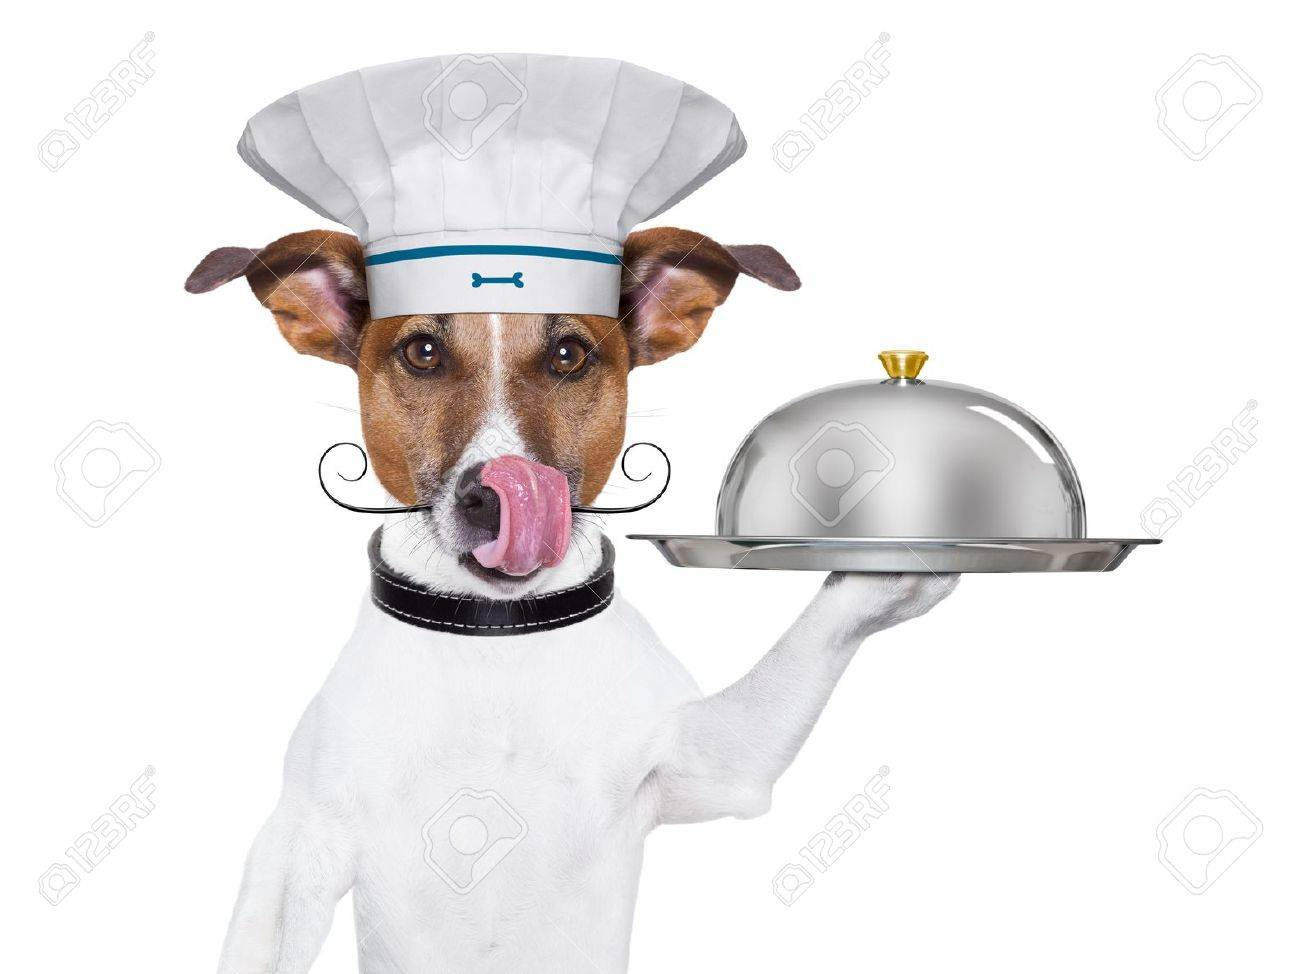 cook dog holding a serving tray with cover Stock Photo - 18589467